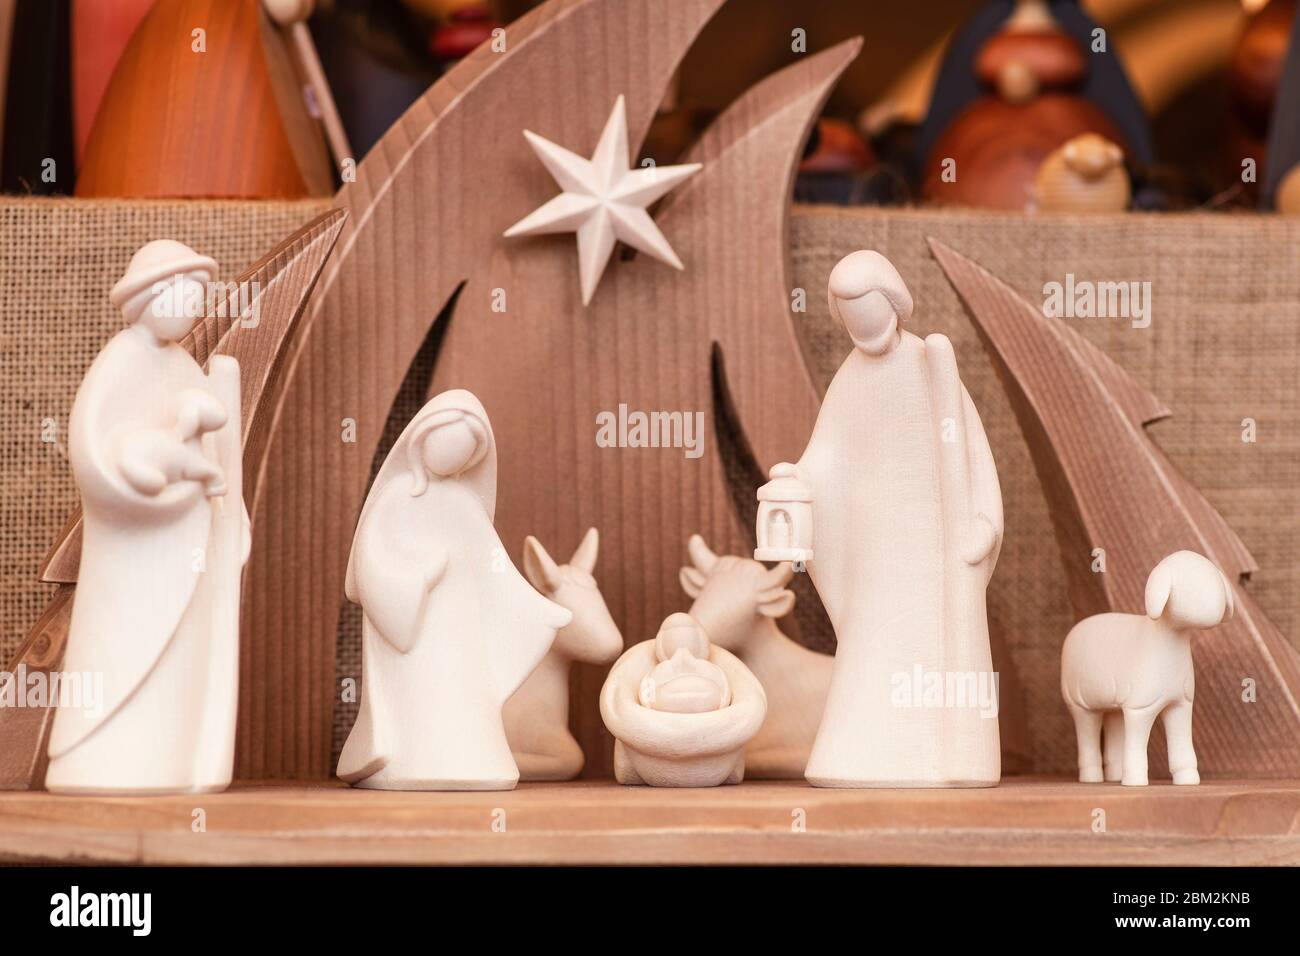 Christmas wooden figurines.Christmas nativity scene wooden figurines inside a wooden house representing the holy family. Stock Photo